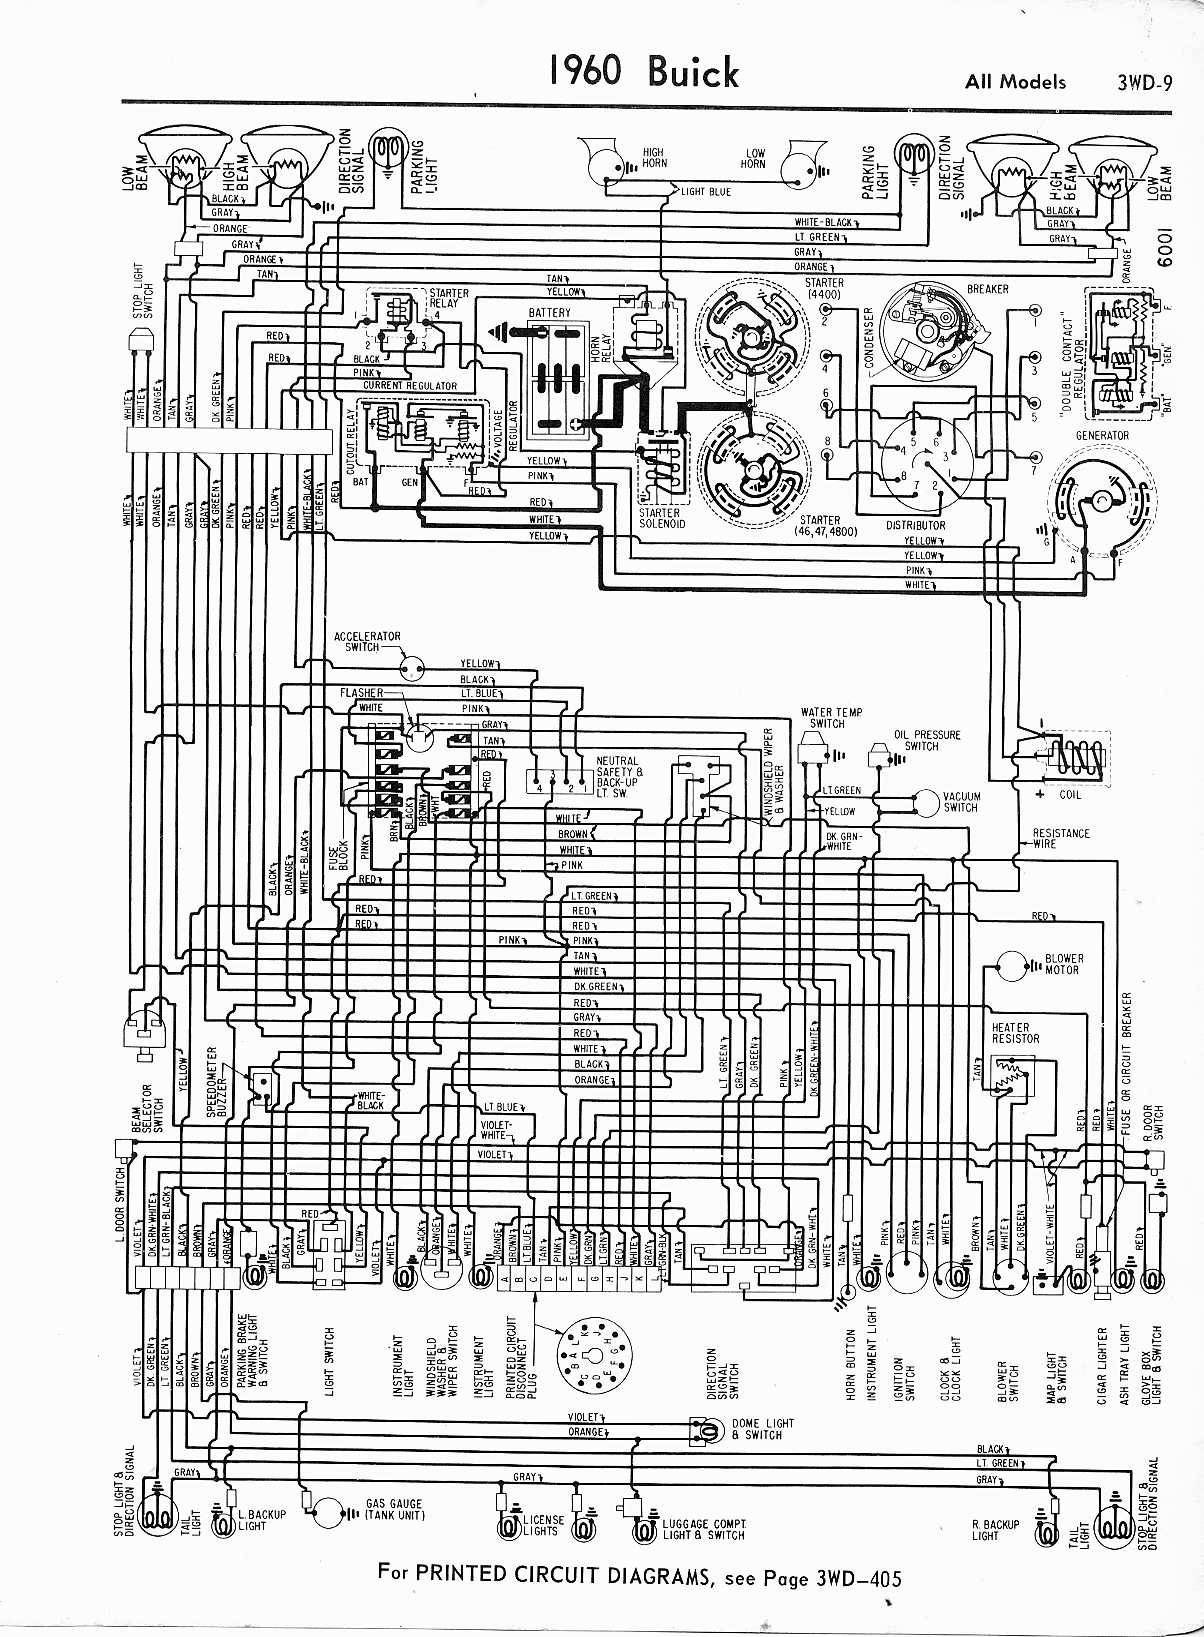 jcb starter wiring diagram free picture schematic 65 riviera wiring diagram free picture schematic buick wiring diagrams: 1957-1965